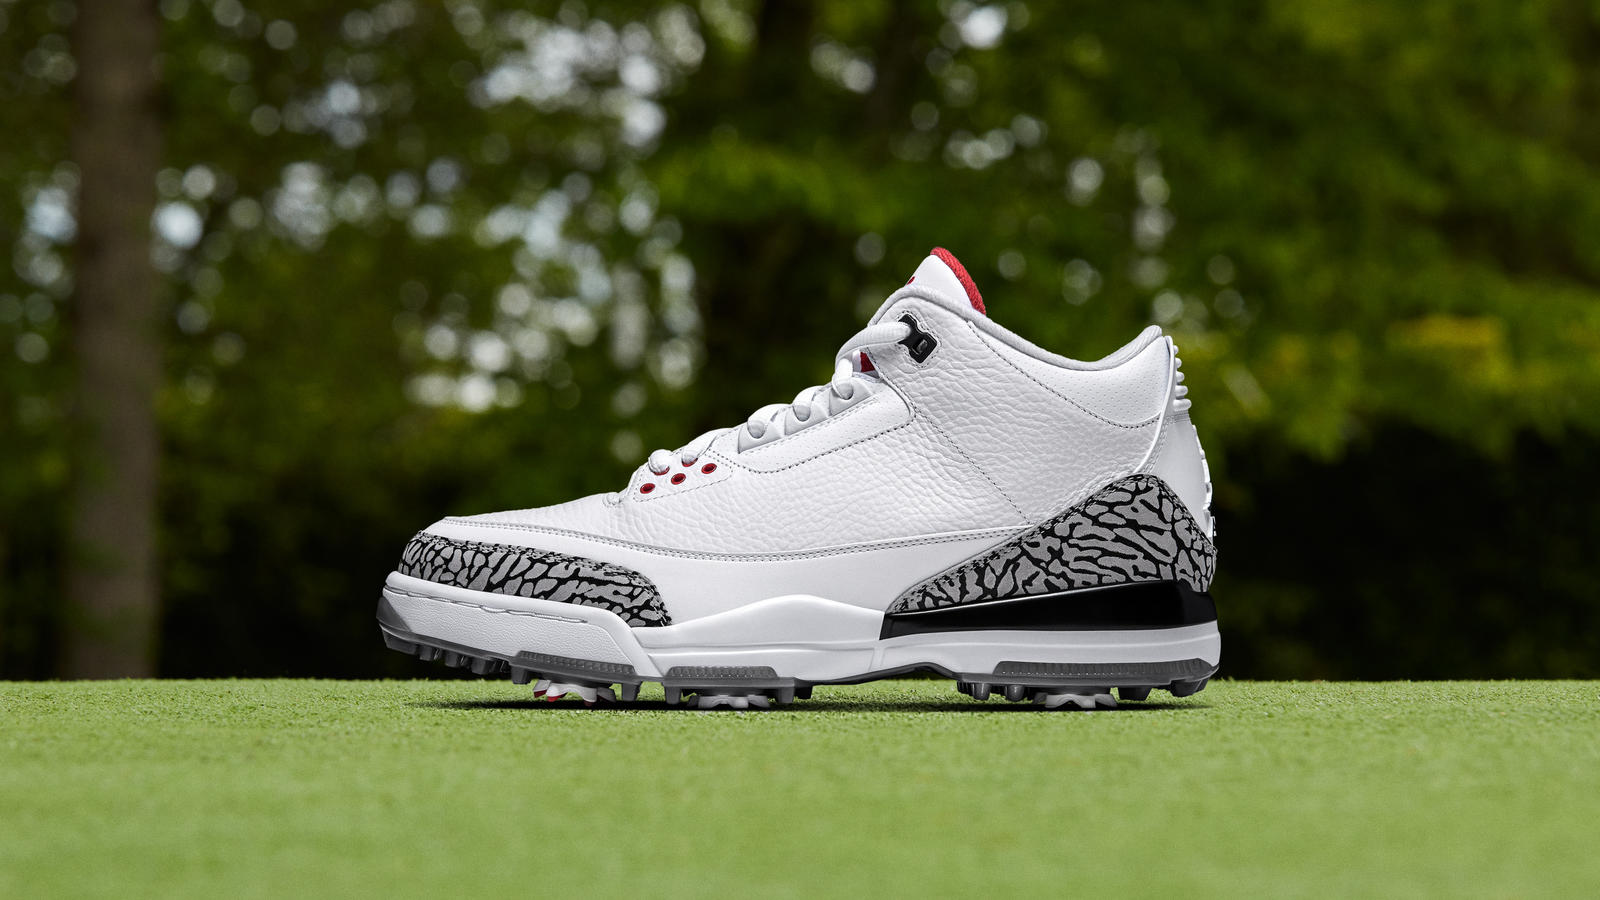 3ad3b3107211ea Air Jordan III Golf - Nike News